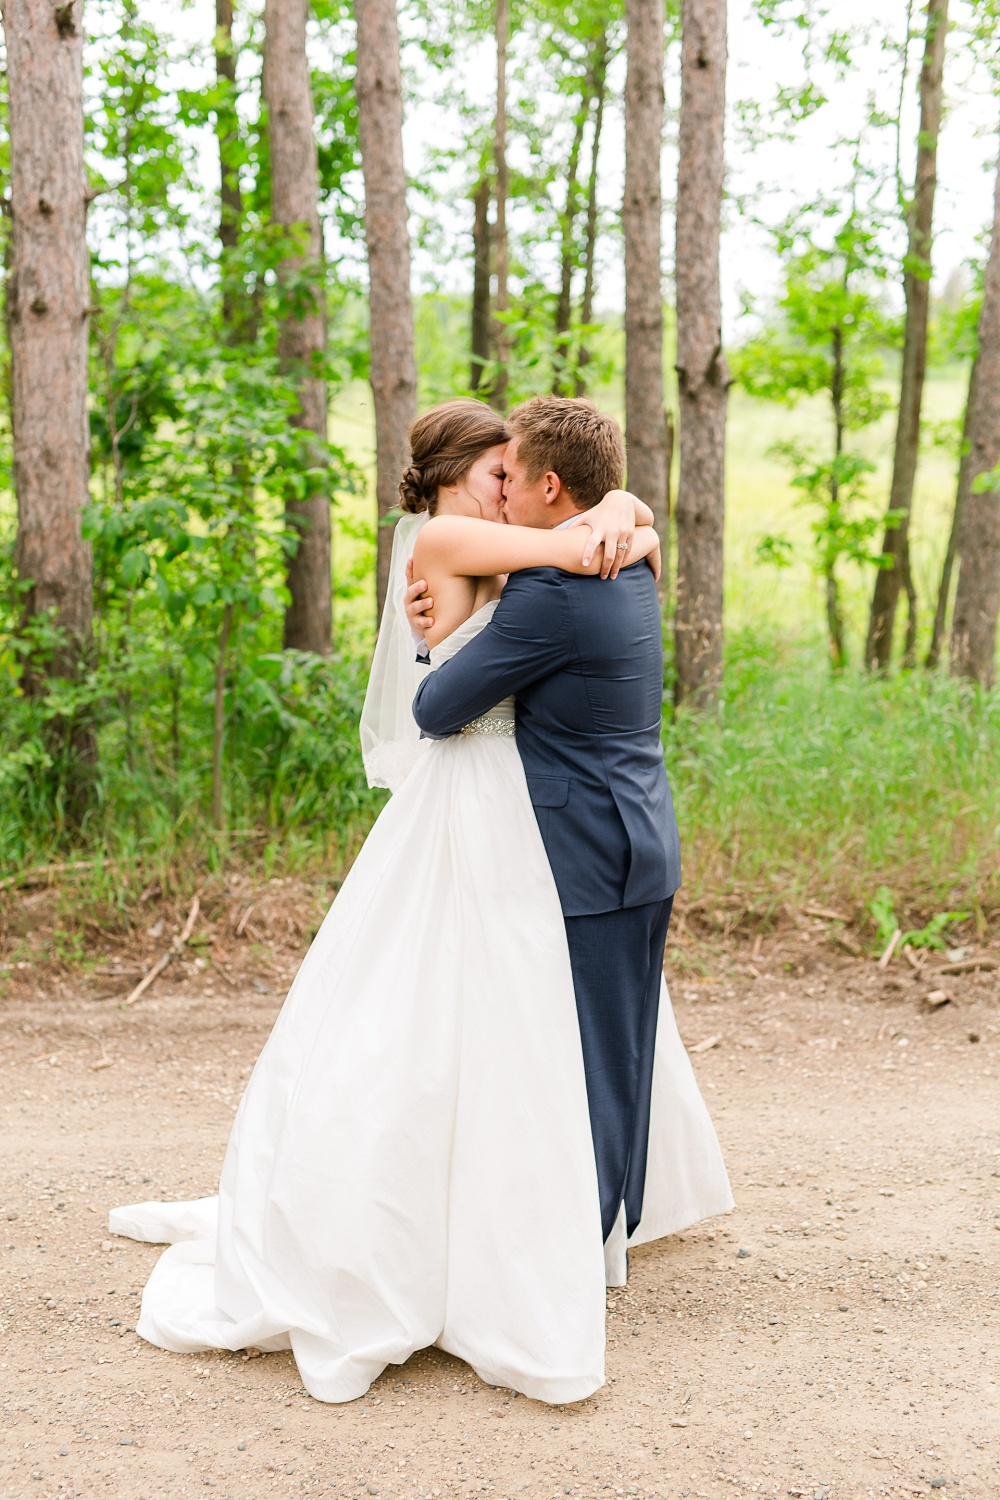 Wolf Lake, MN Country Styled Wedding, White Dress, Blue Suite | Photographed by Amber Langerud Photography | Bride & Groom embracing each other kissing